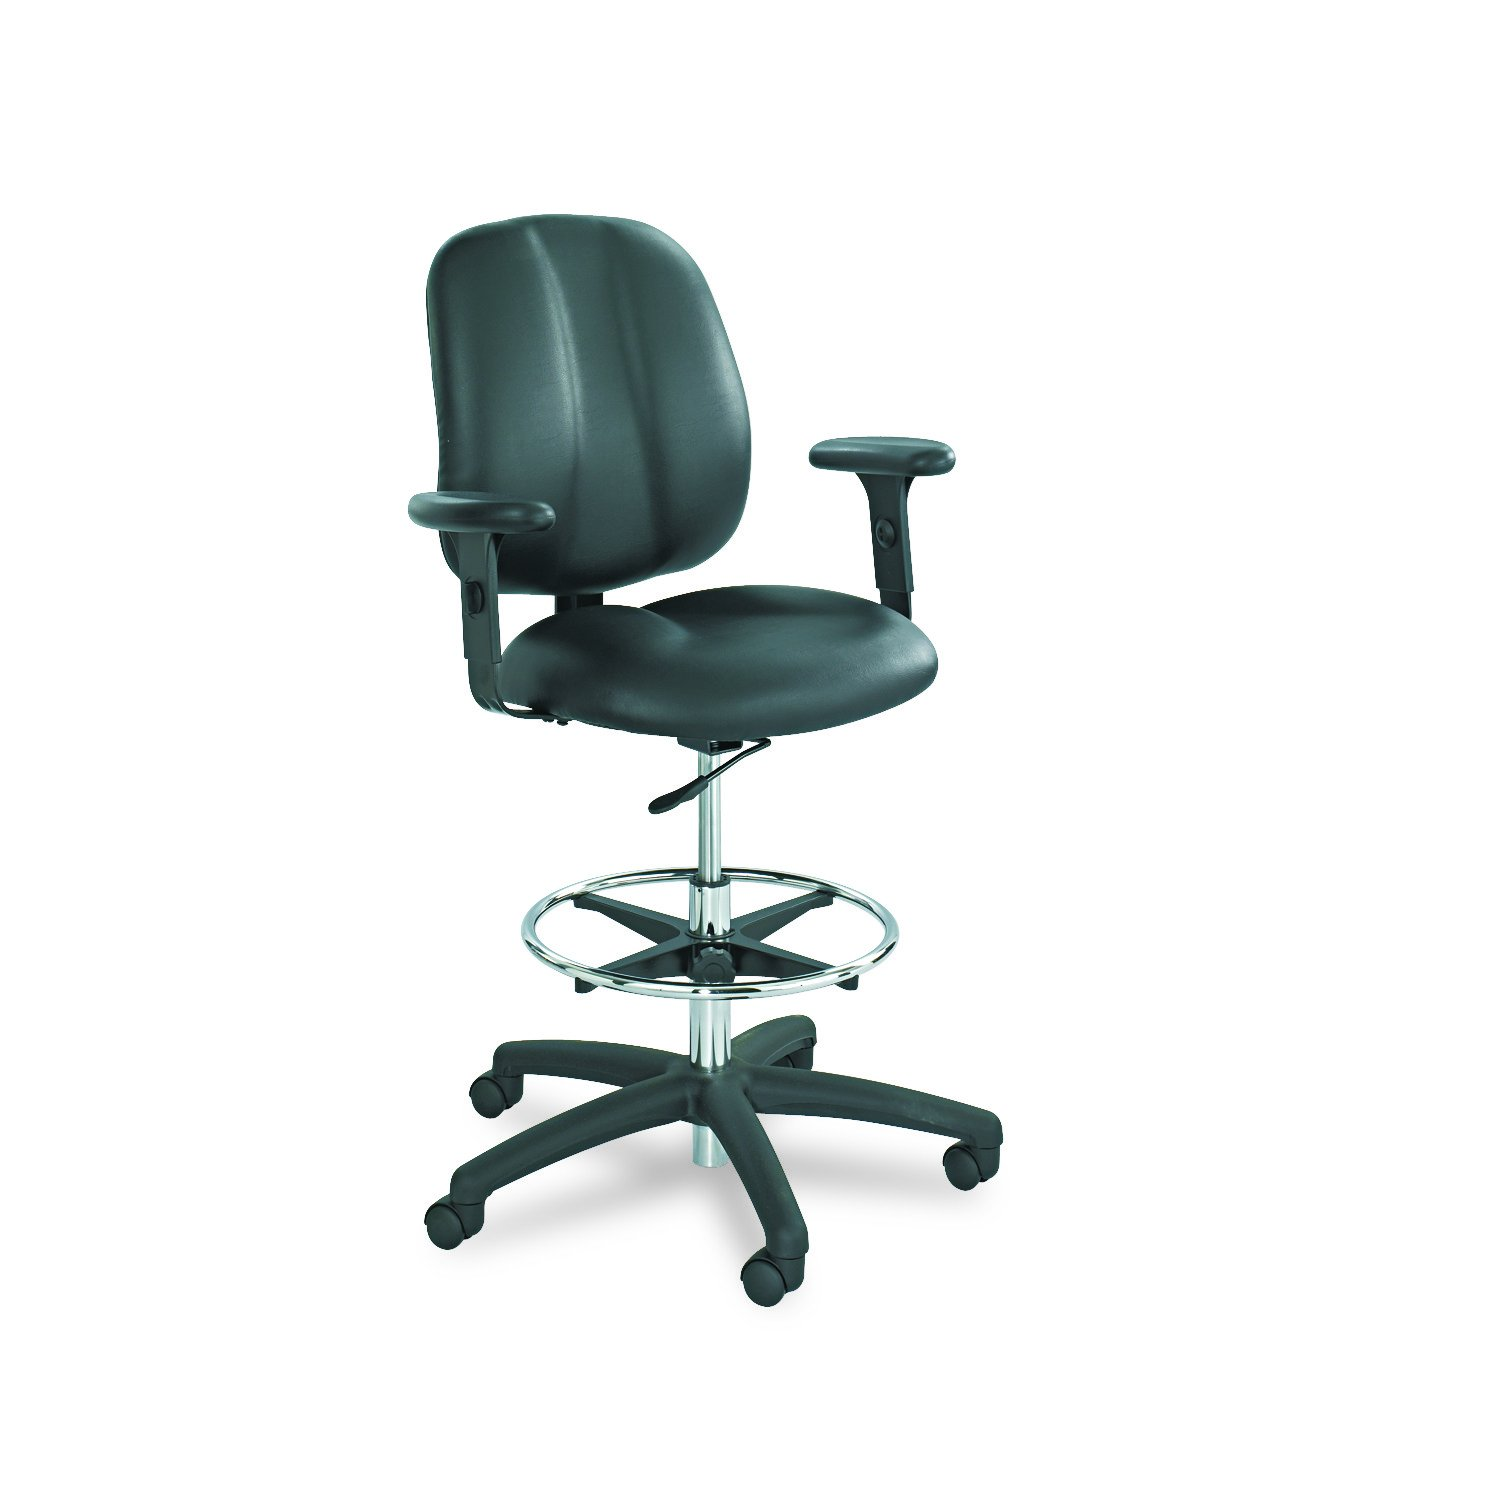 Safco Products 6689BL Adjustable T-Pad Arm Set for use with Apprentice II Extended Height Chair, sold separately, Black by Safco Products (Image #1)